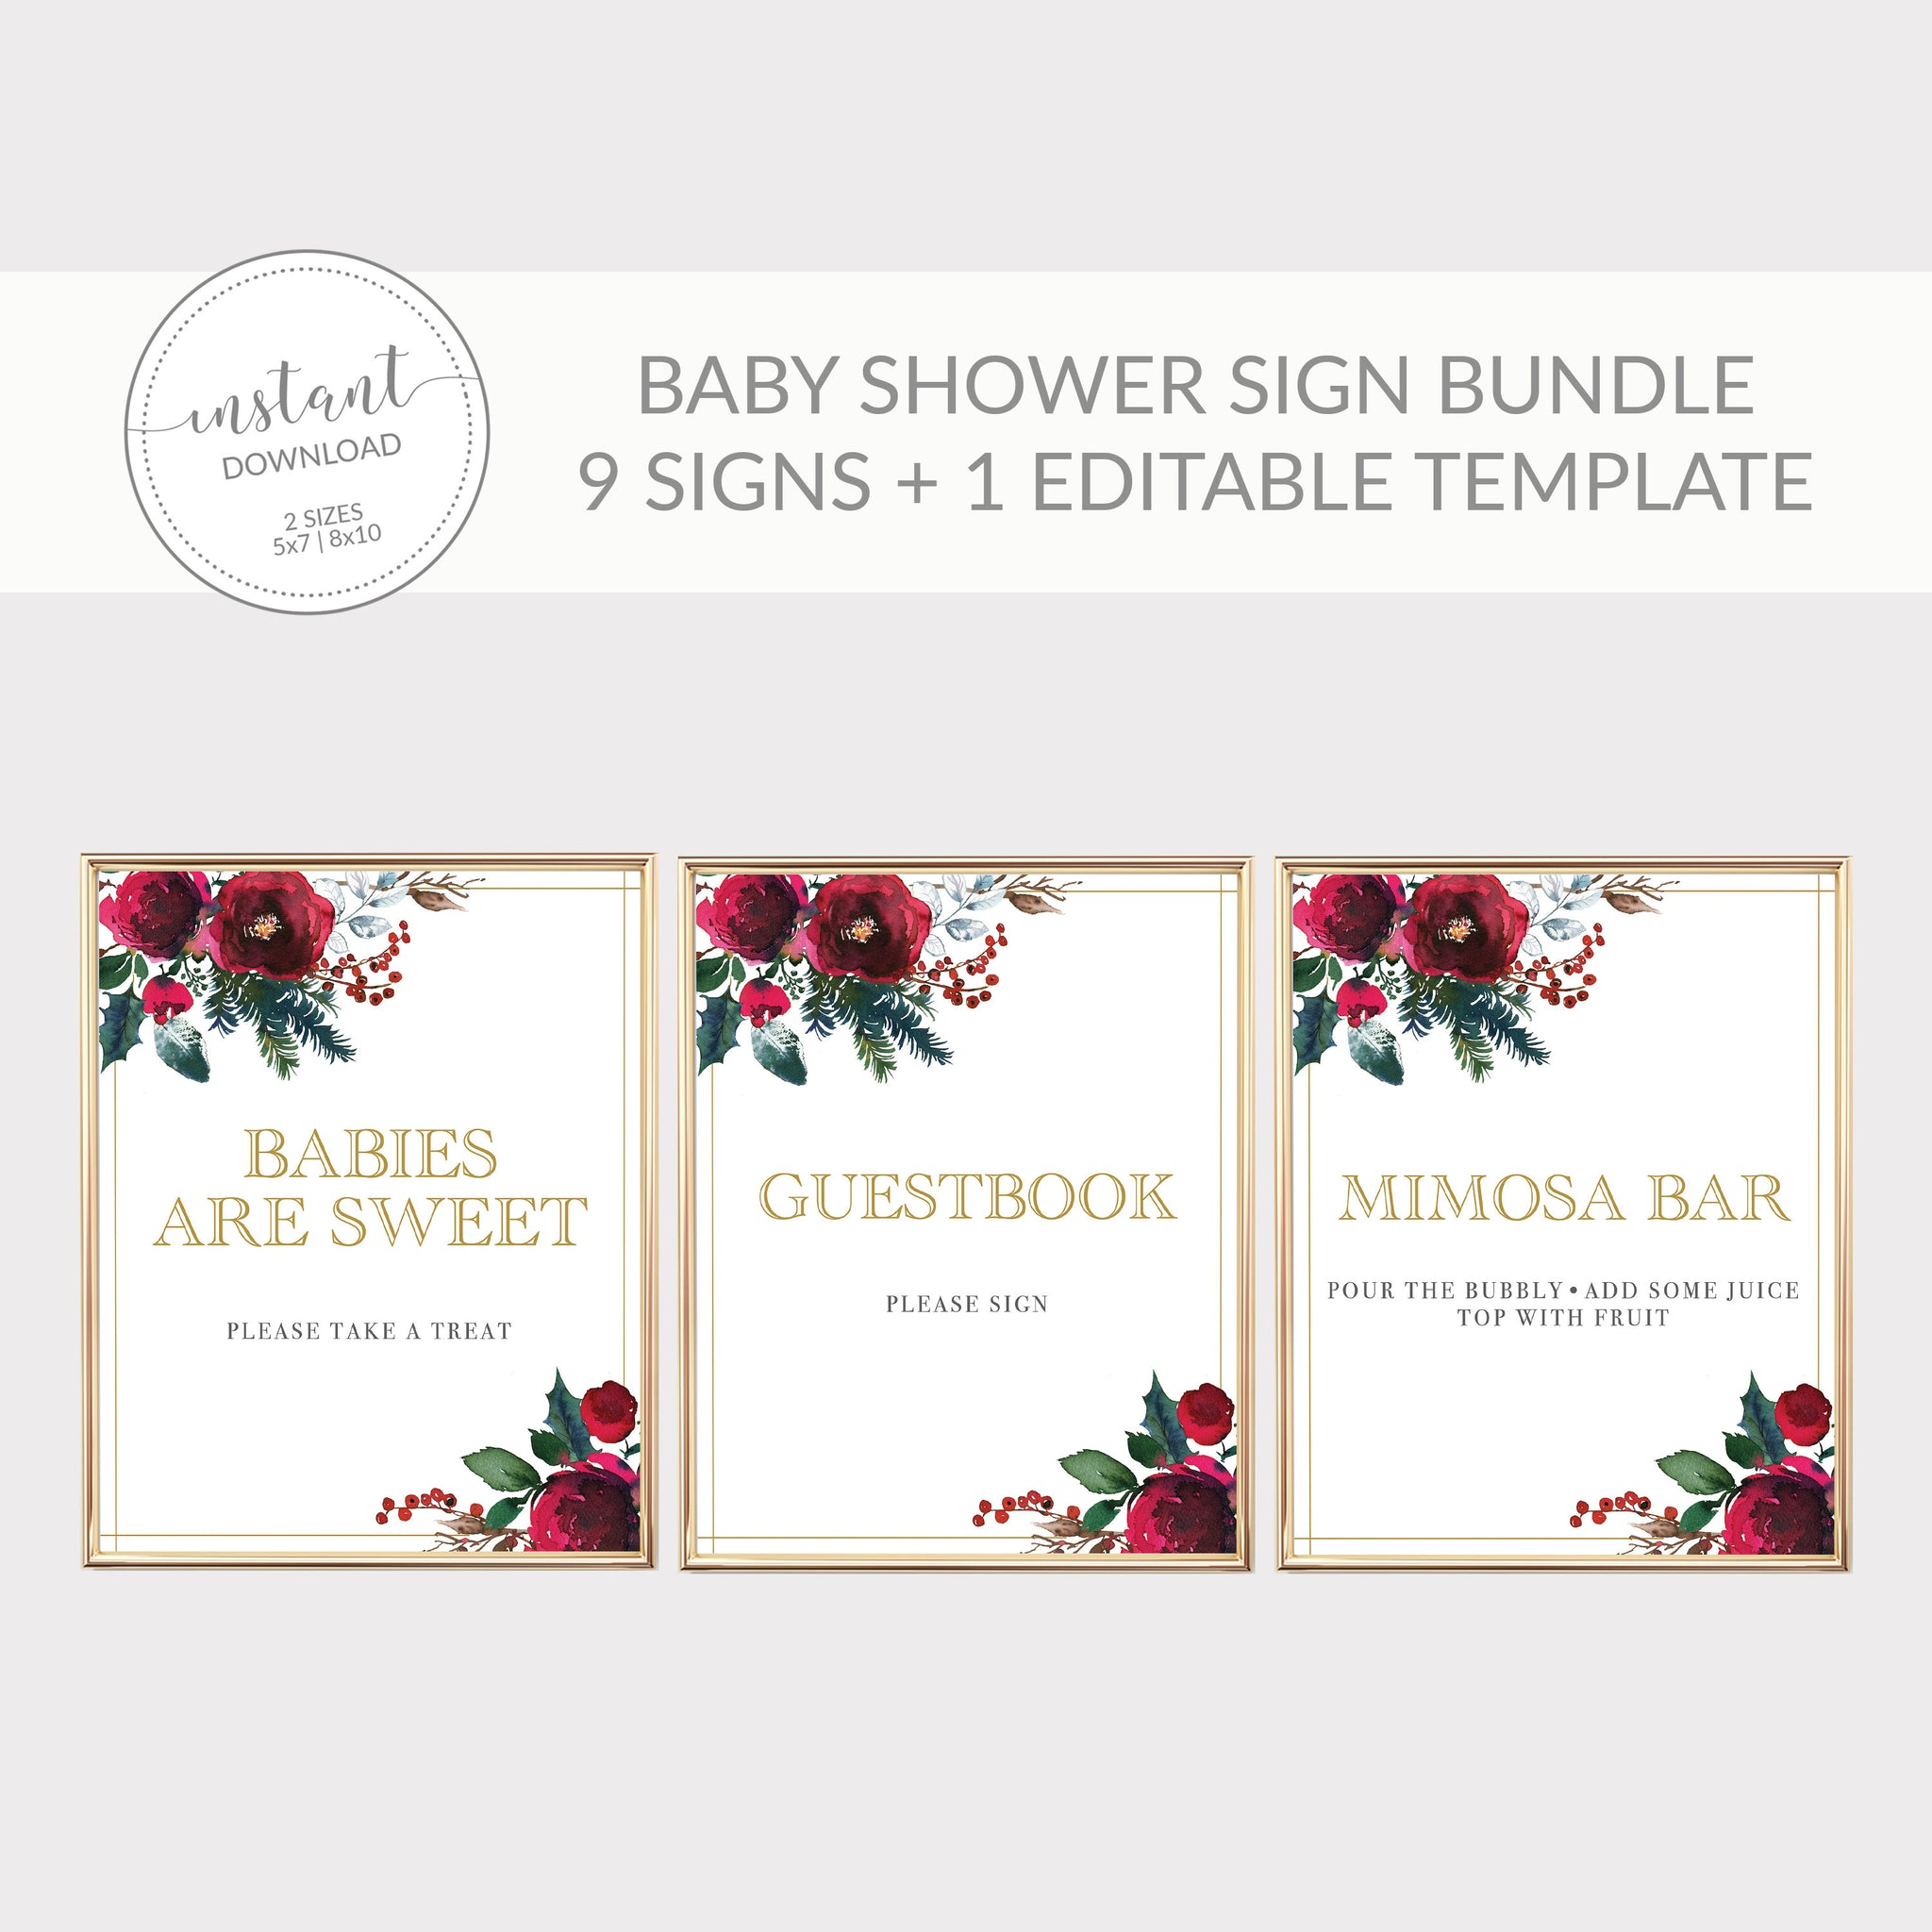 Christmas Baby Shower Sign Bundle, Christmas Baby Shower Decorations, Holiday Baby Shower Table Signs Printable, DIGITAL DOWNLOAD CG100 - @PlumPolkaDot